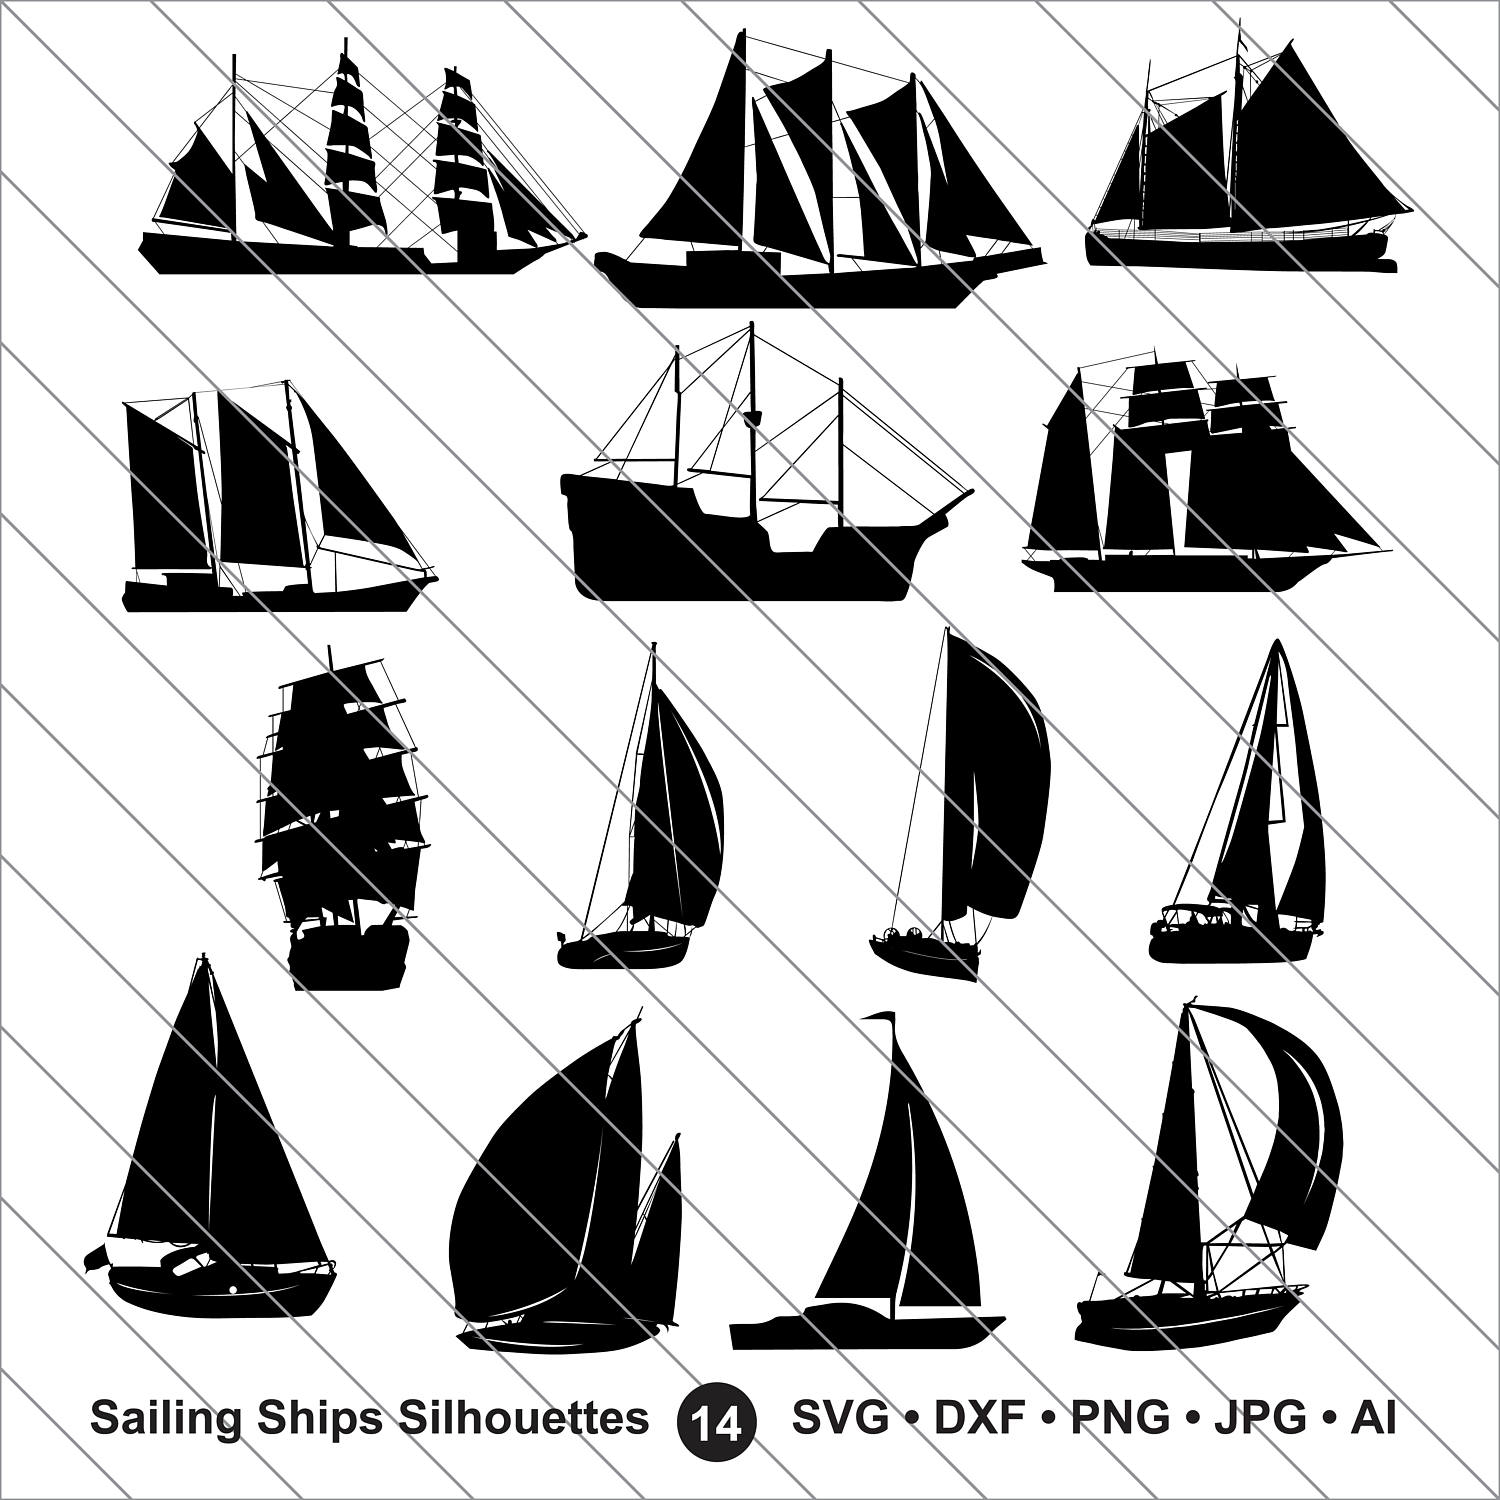 Sailing Boat clipart sailboat File Sailboat Sailing is Ships